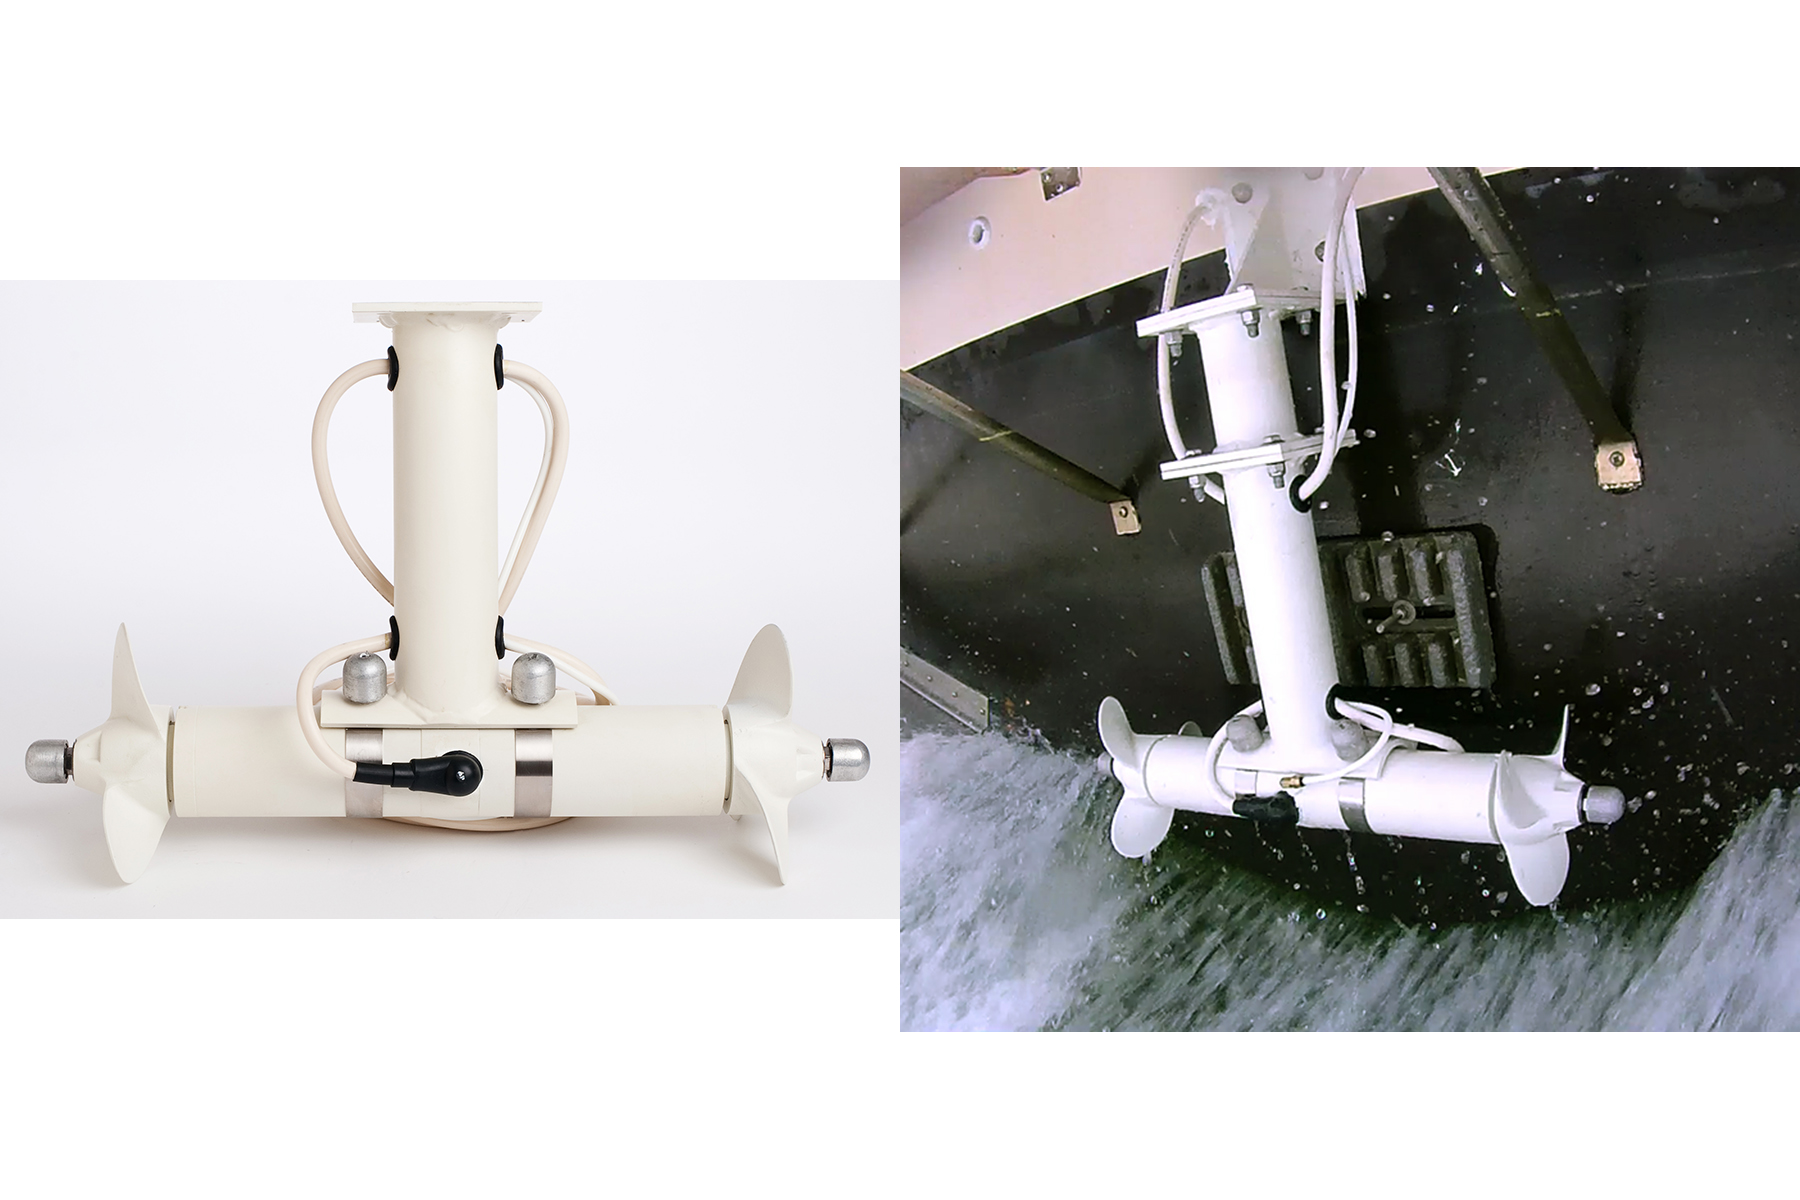 Boaters gain expert control with external stern thrusters actionhub